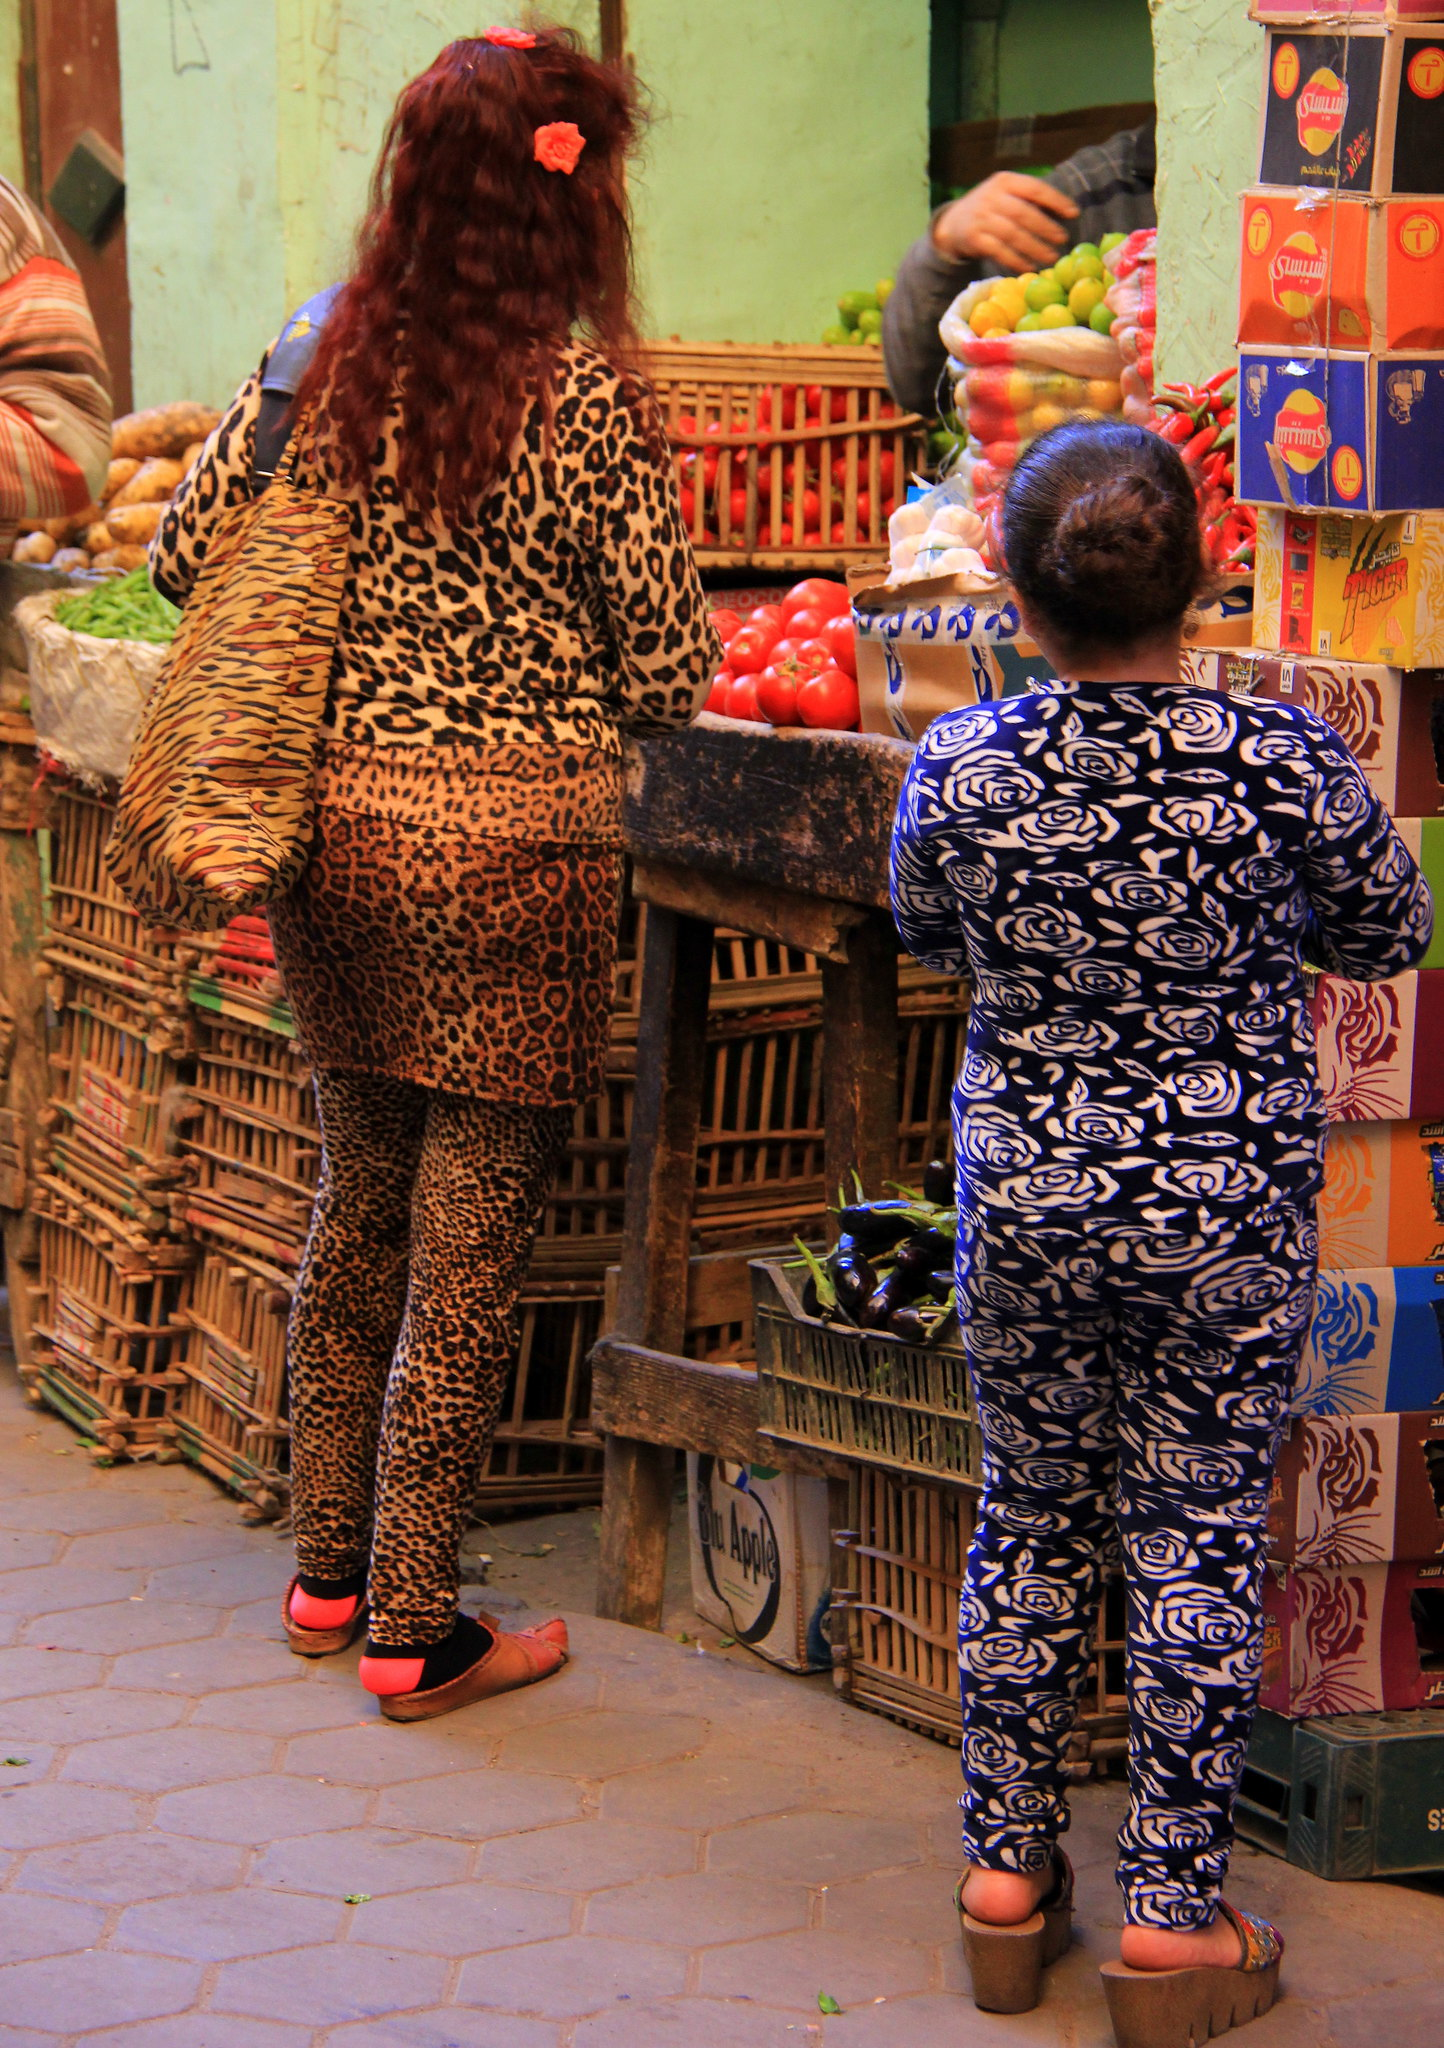 Shopping area in old cairo